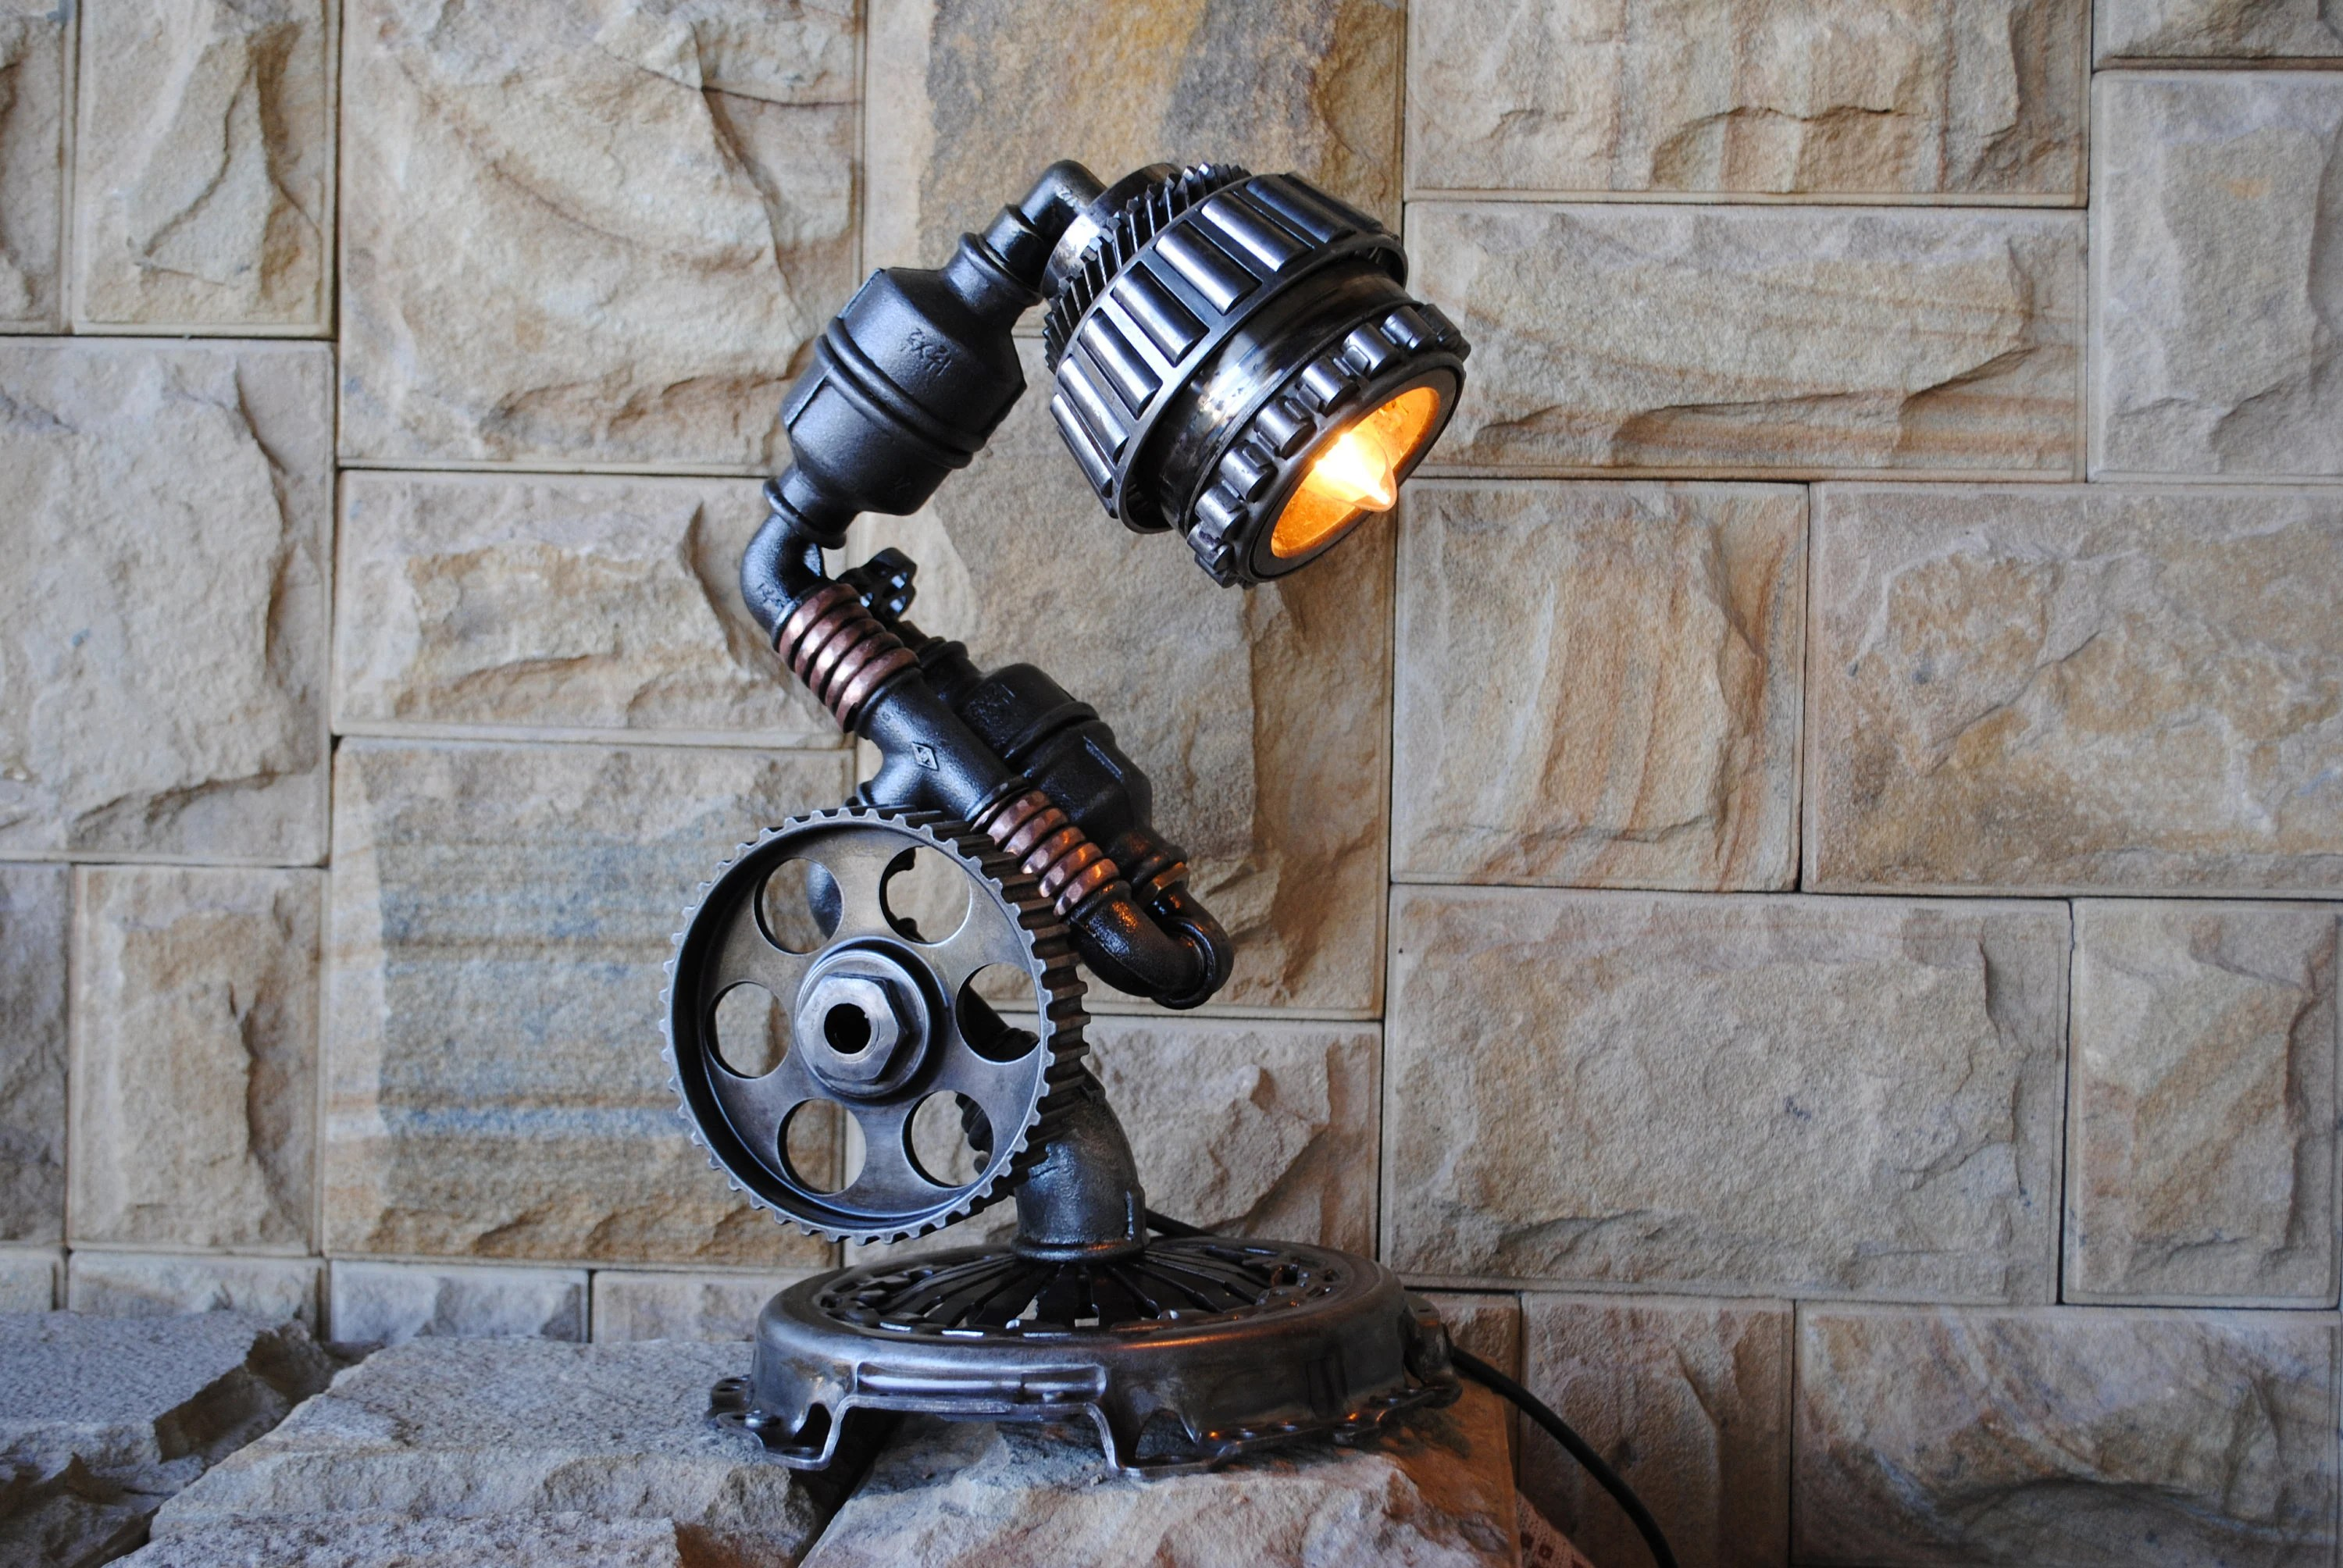 Lampe Industrial Design Cool Industrial Lamps St Patrick S Day Gift Industrial Bedside Table Lamp Lampe Industrial Design Pipe Lamp Design Steampunk Vintage Lamps